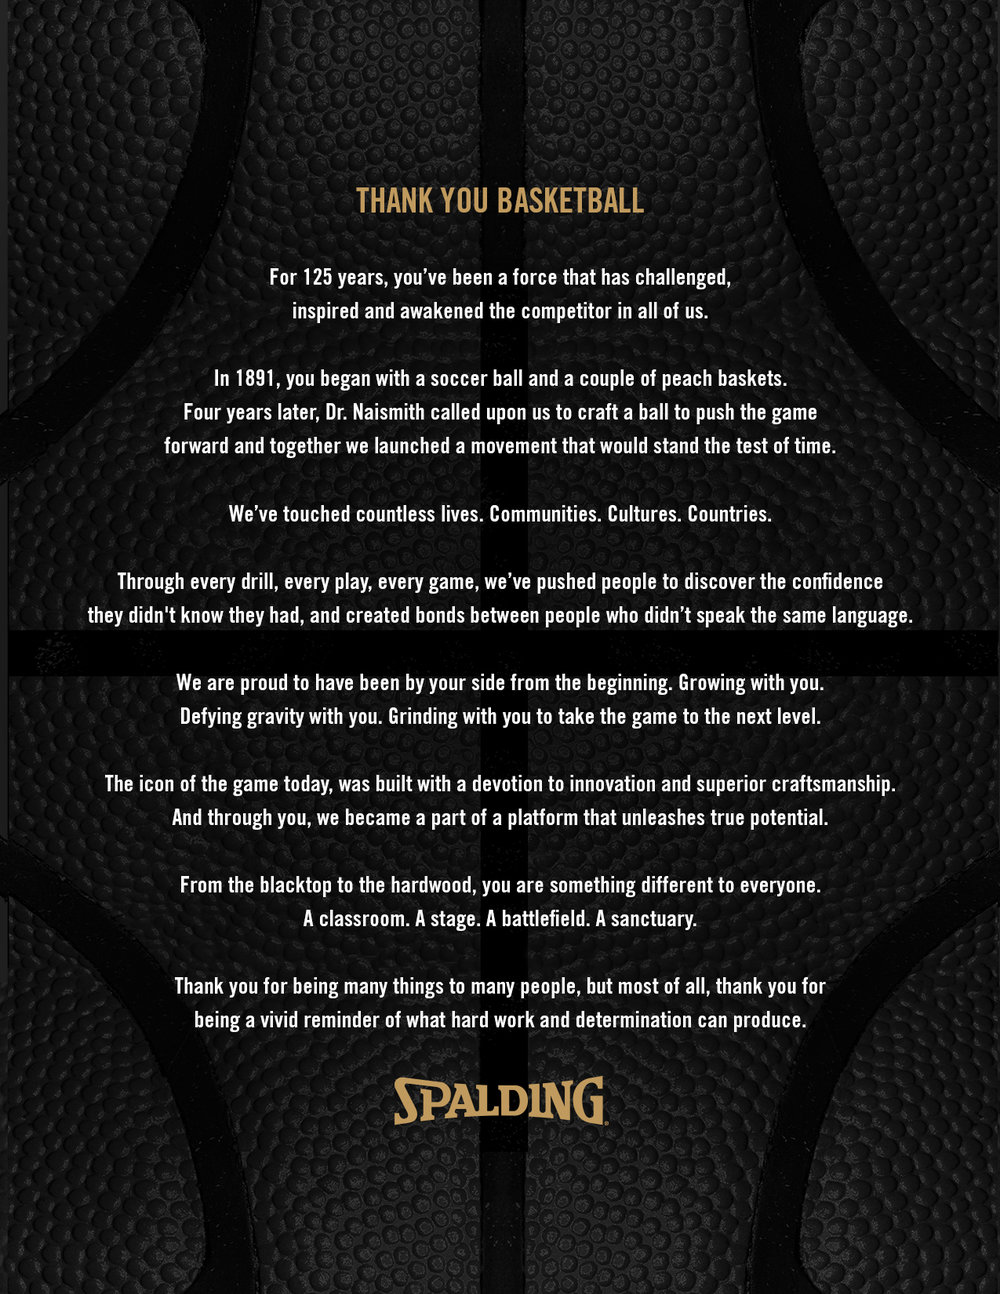 Spalding hopes to build emotion for their campaign with their open letter to the game of basketball. Image via Spalding